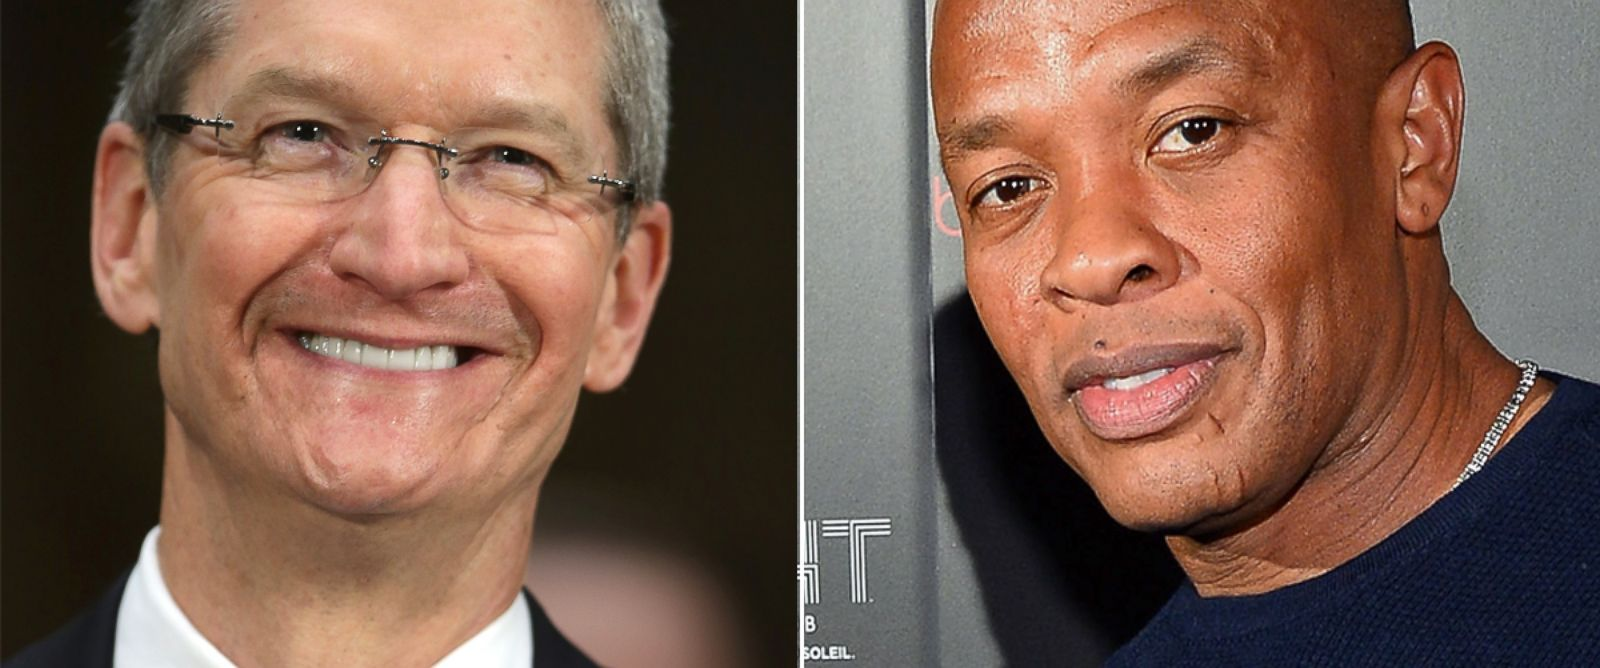 PHOTO: Apple CEO Tim Cook during the keynote address during the Apple Worldwide Developers Conference, June 10, 2013 in San Francisco, Calif. | Dr. Dre arrives at a Beats by Dr. Dre CES after party, Jan. 9, 2014 in Las Vegas, Nevada.